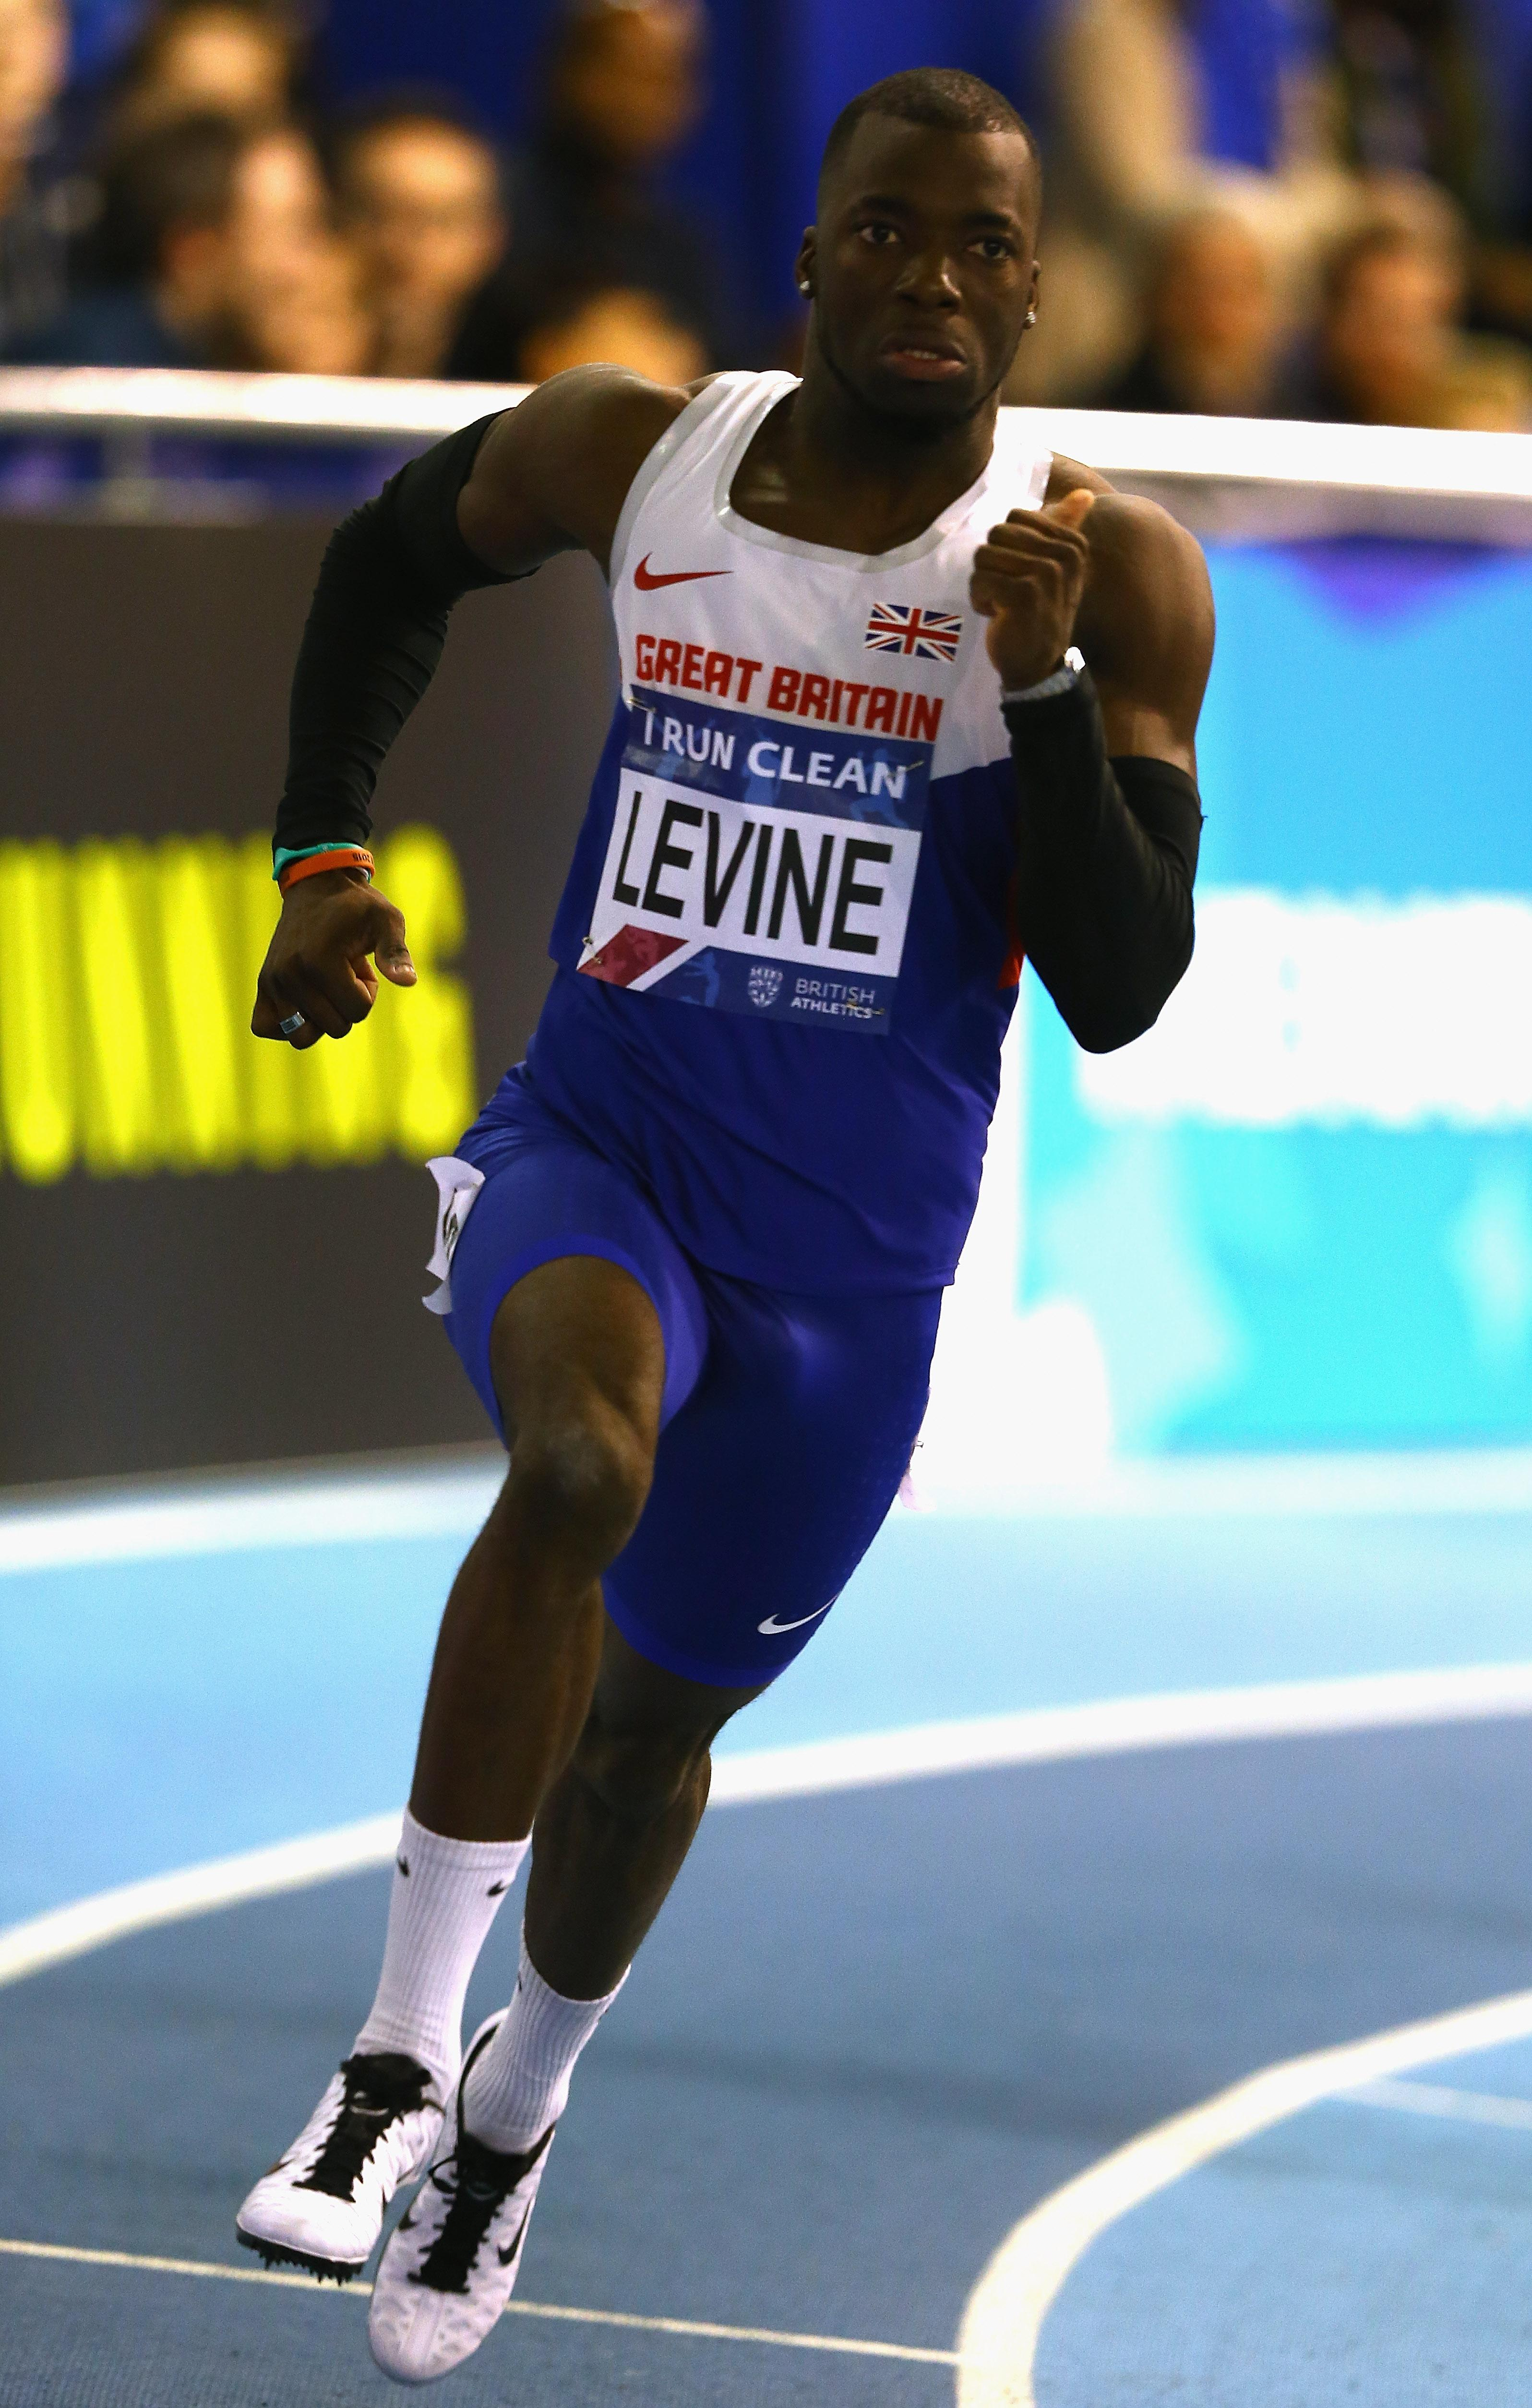 Nigel Levine has been provisionally suspended after being charged with doping